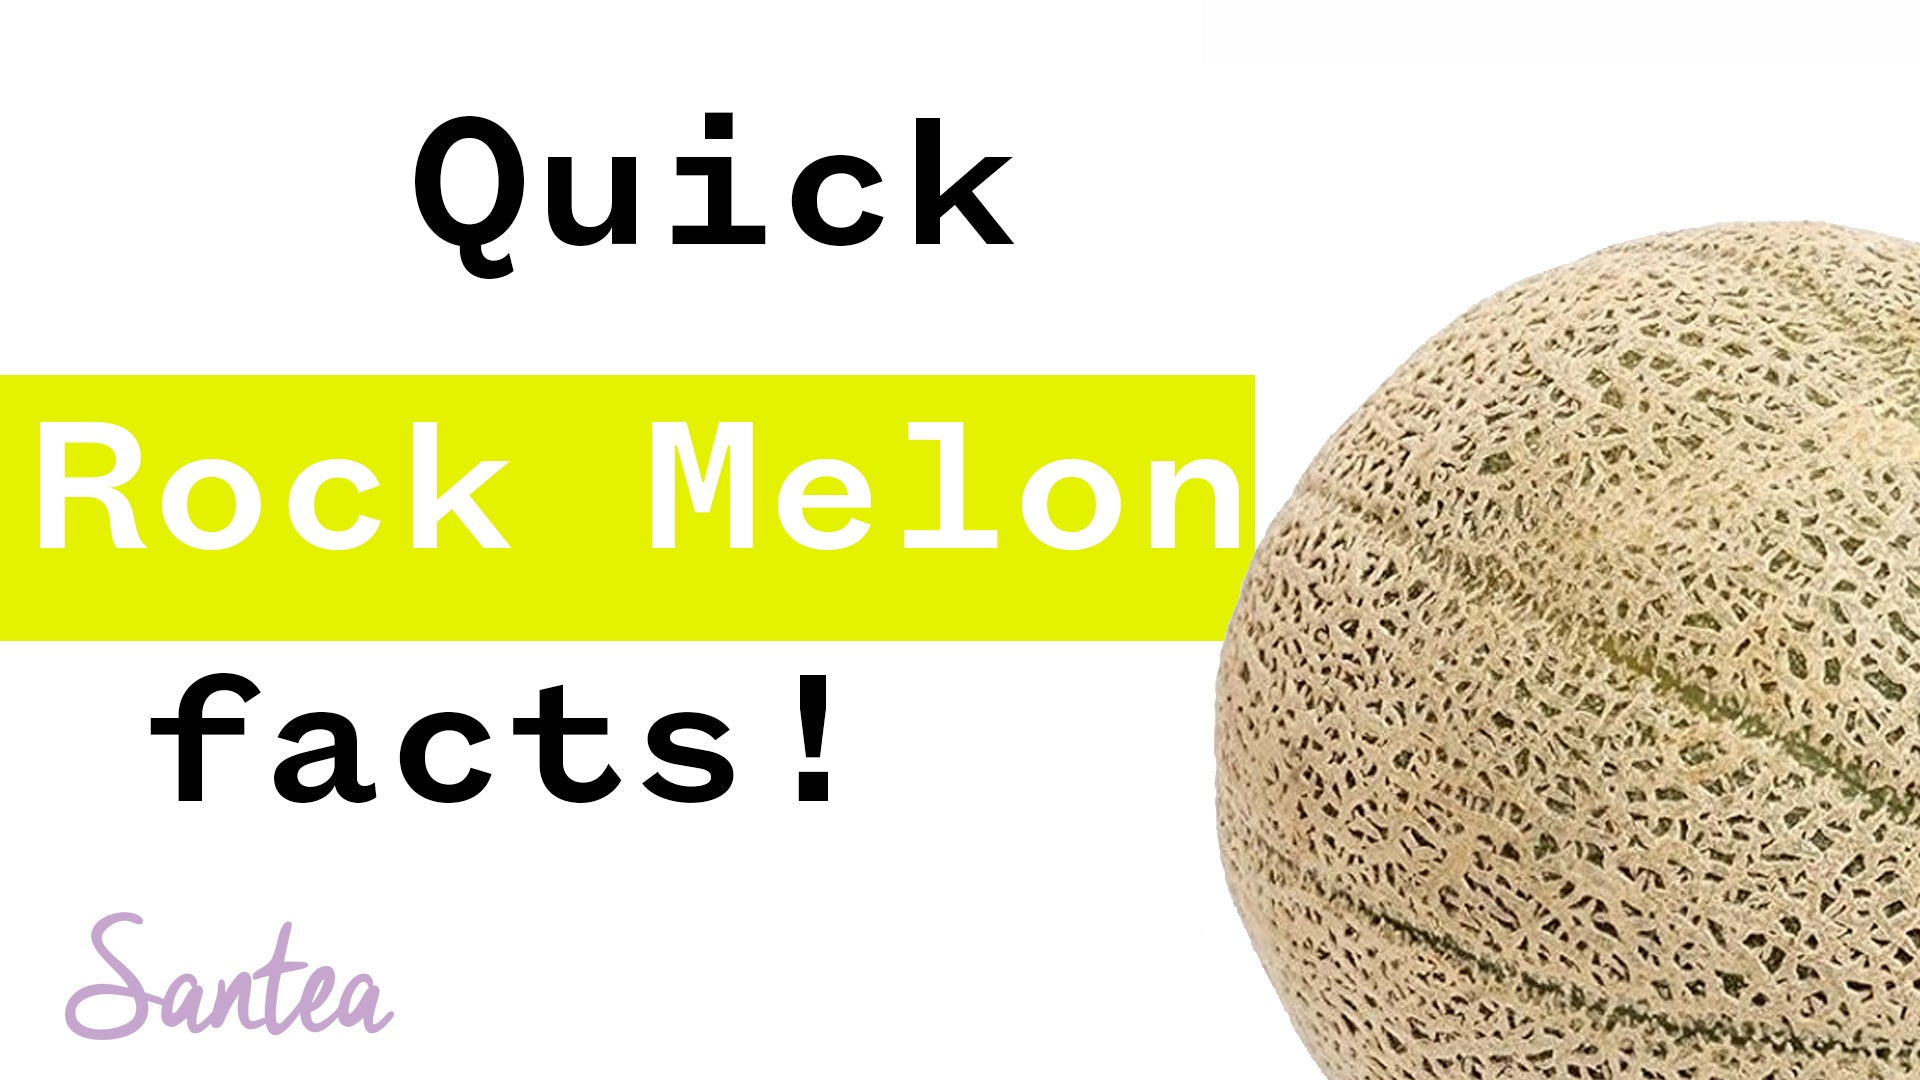 Rockmelon Facts | 1 Minute or Less